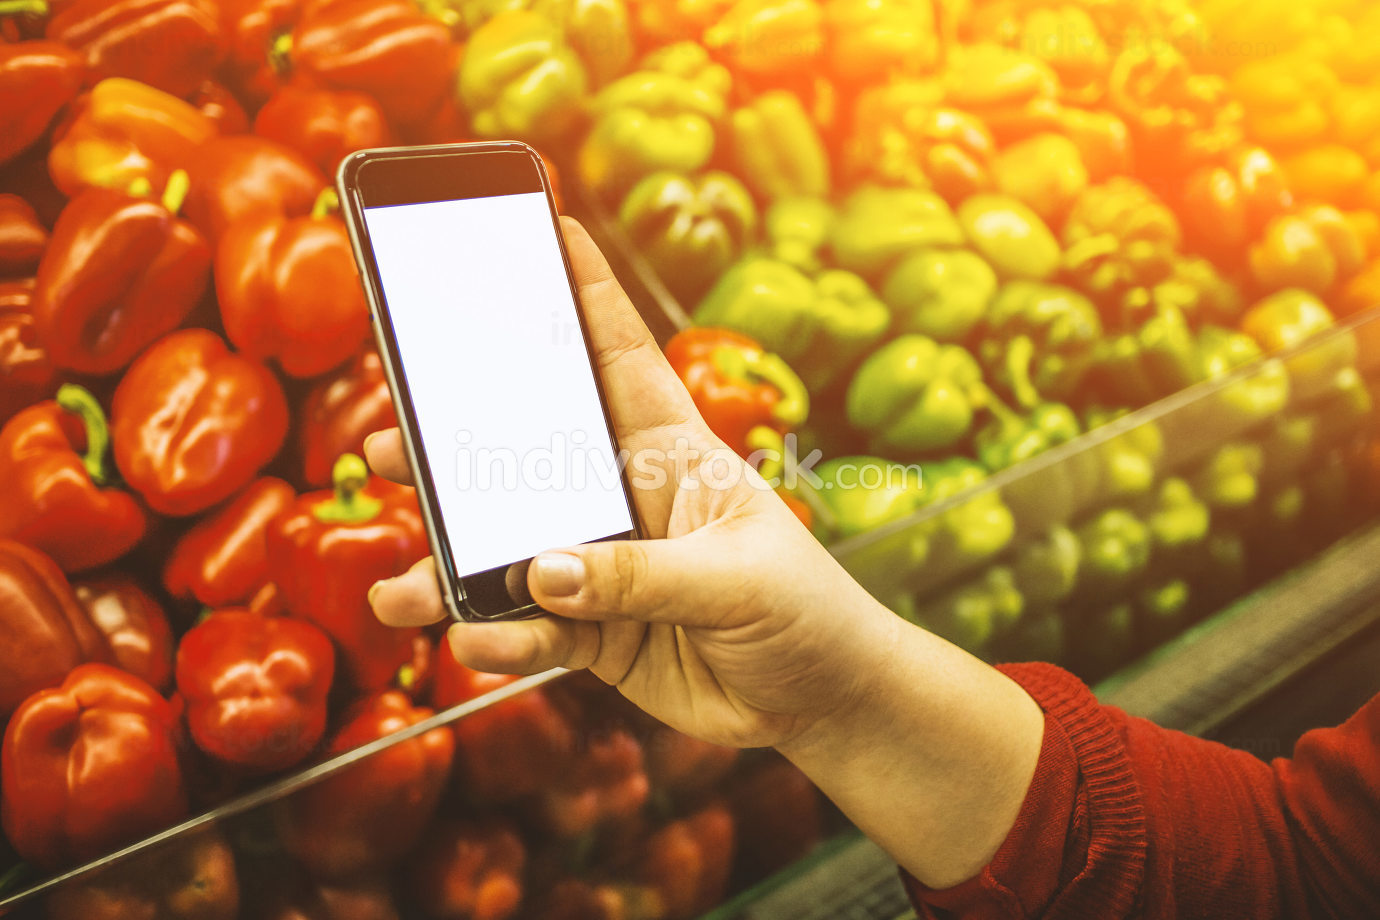 Hand holding smart phone on blurred market background - shopping online nice mockup